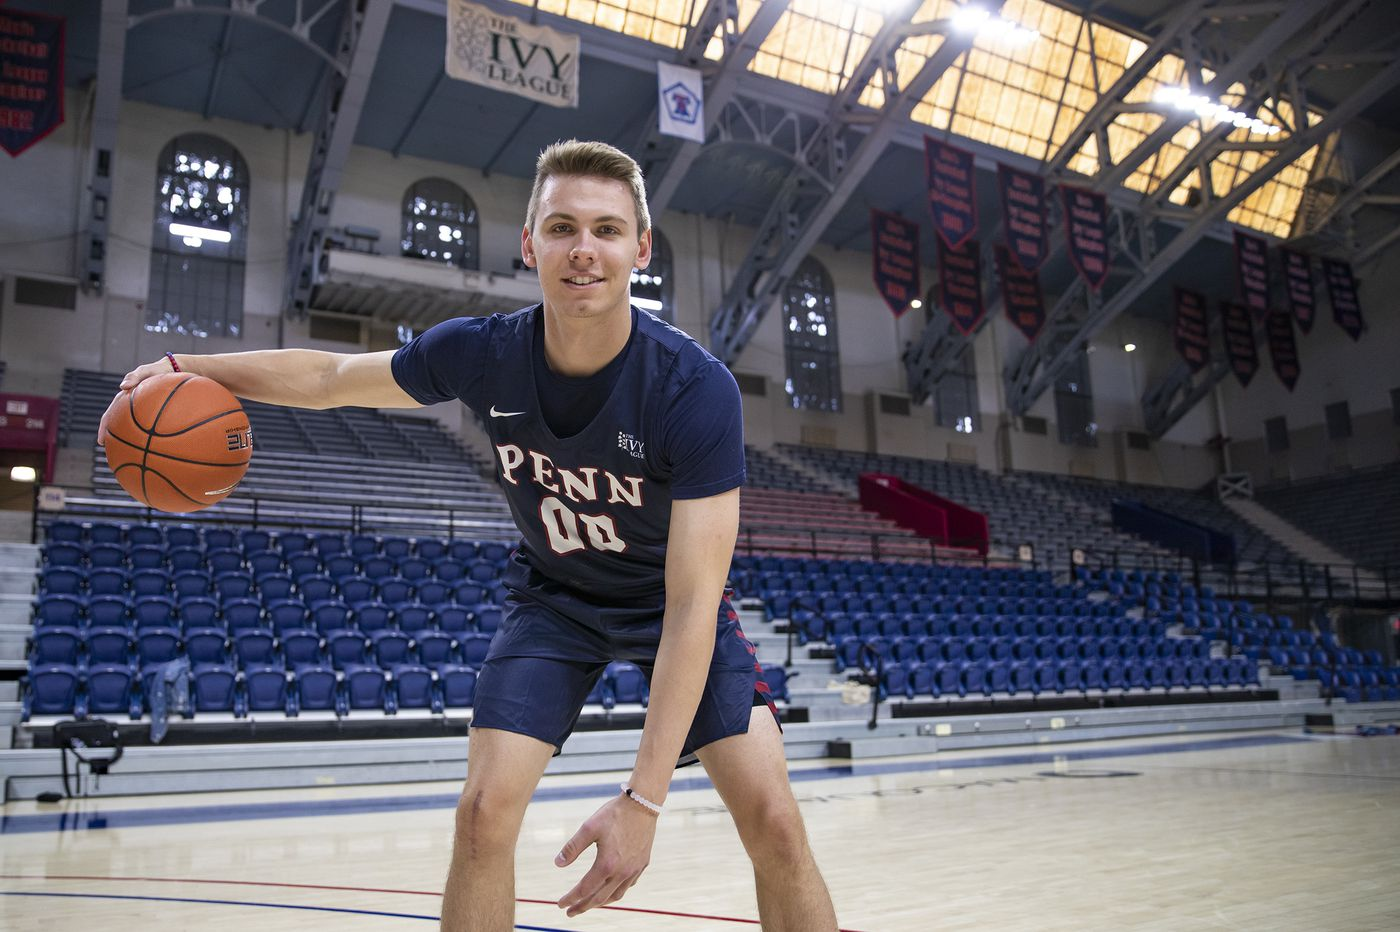 Penn's Ryan Betley back for one more year (but just one) | College basketball preview